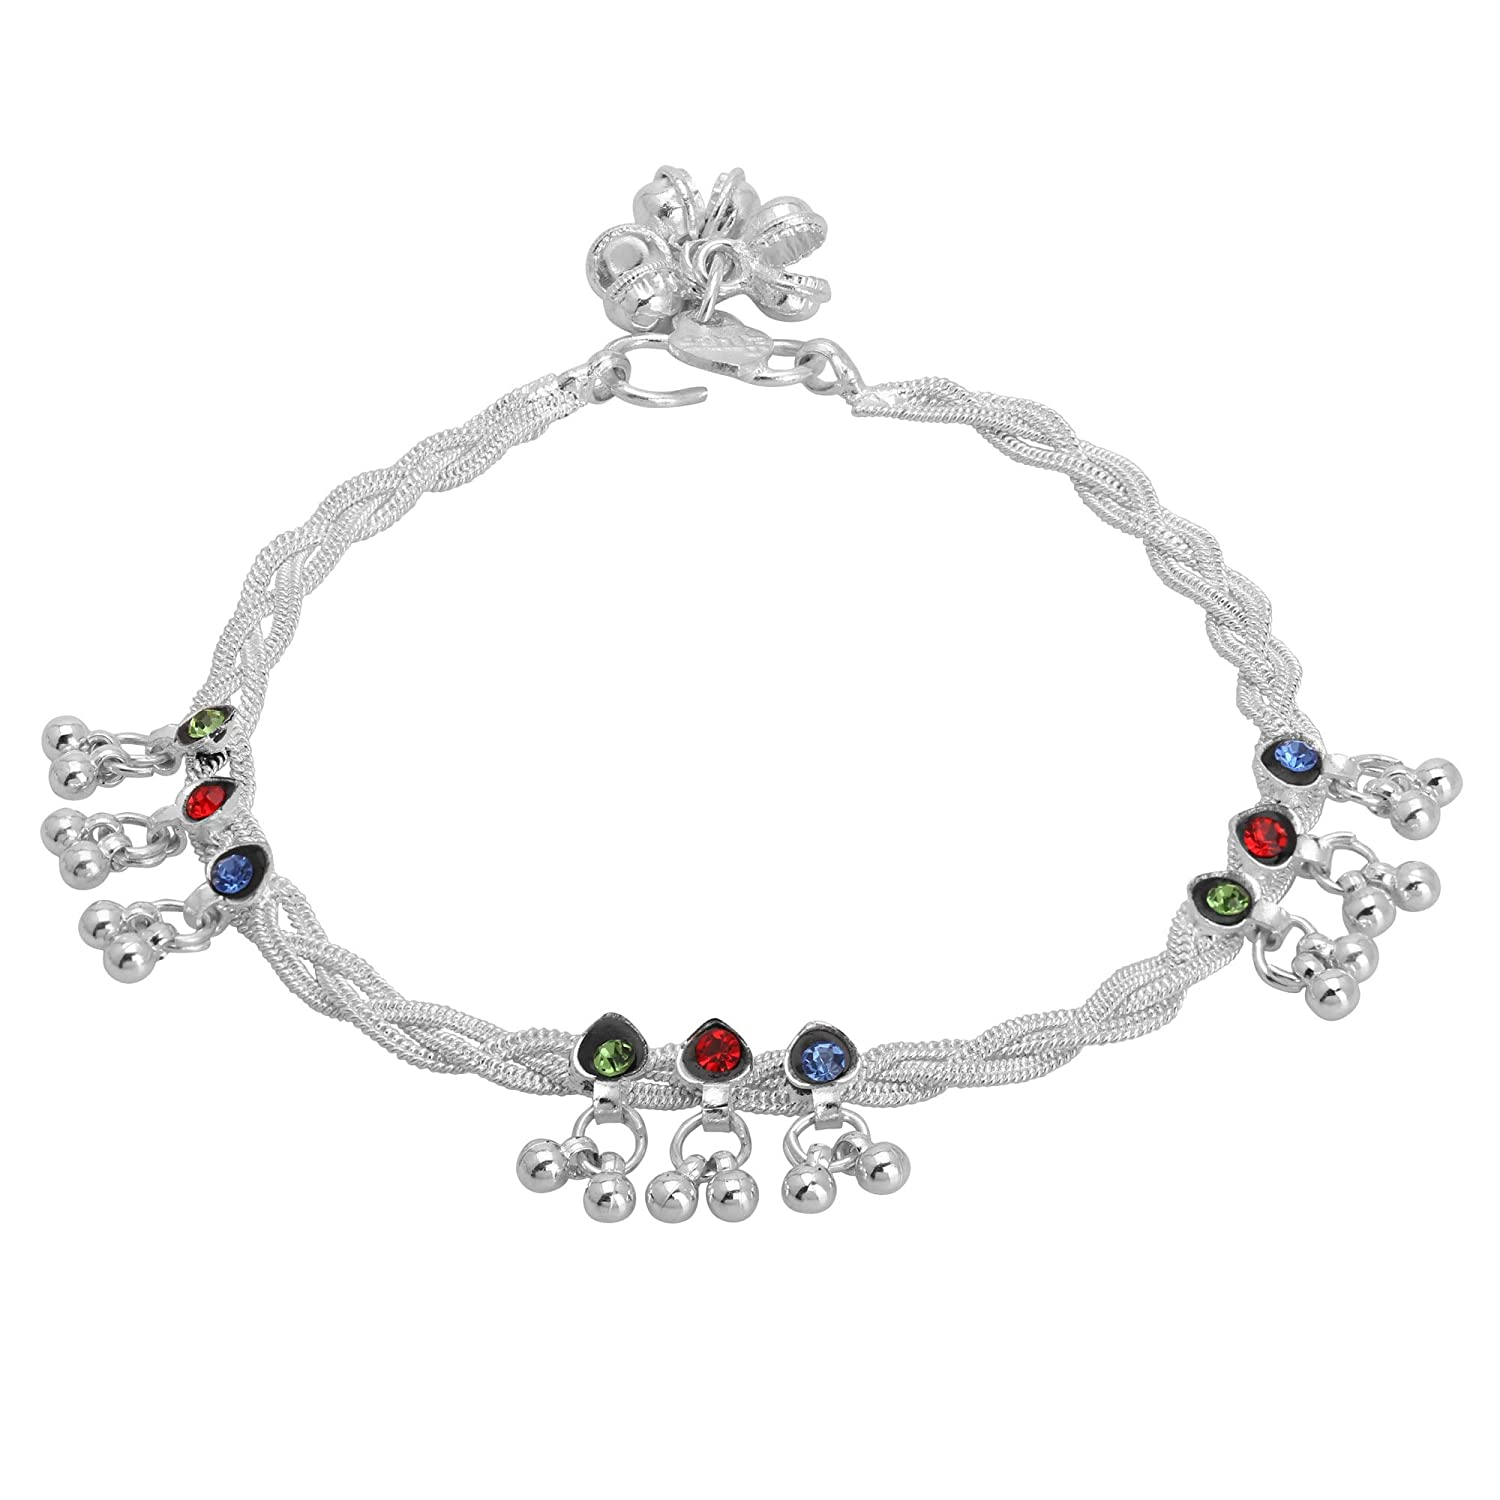 iCraftJewel Traditional Anklet Payal Indian Woman Foot Anklet Set Bollywood Jewelry Wedding Gift Item